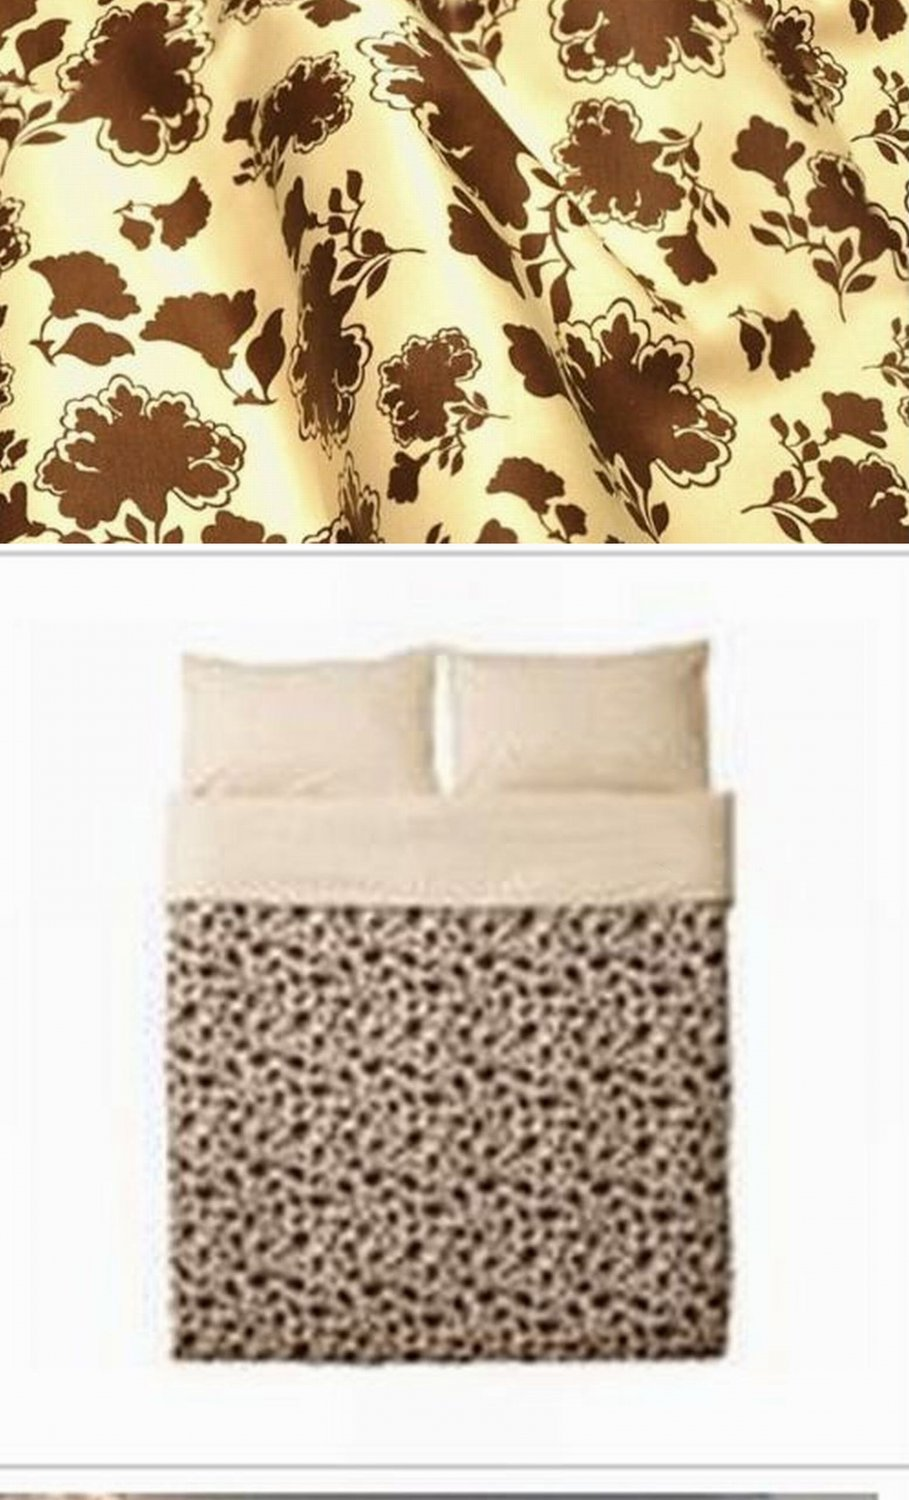 IKEA RANSBY QUEEN Full Double Duvet COVER Set BROWN Beige FLORAL Leaf  MID CENTURY Retro